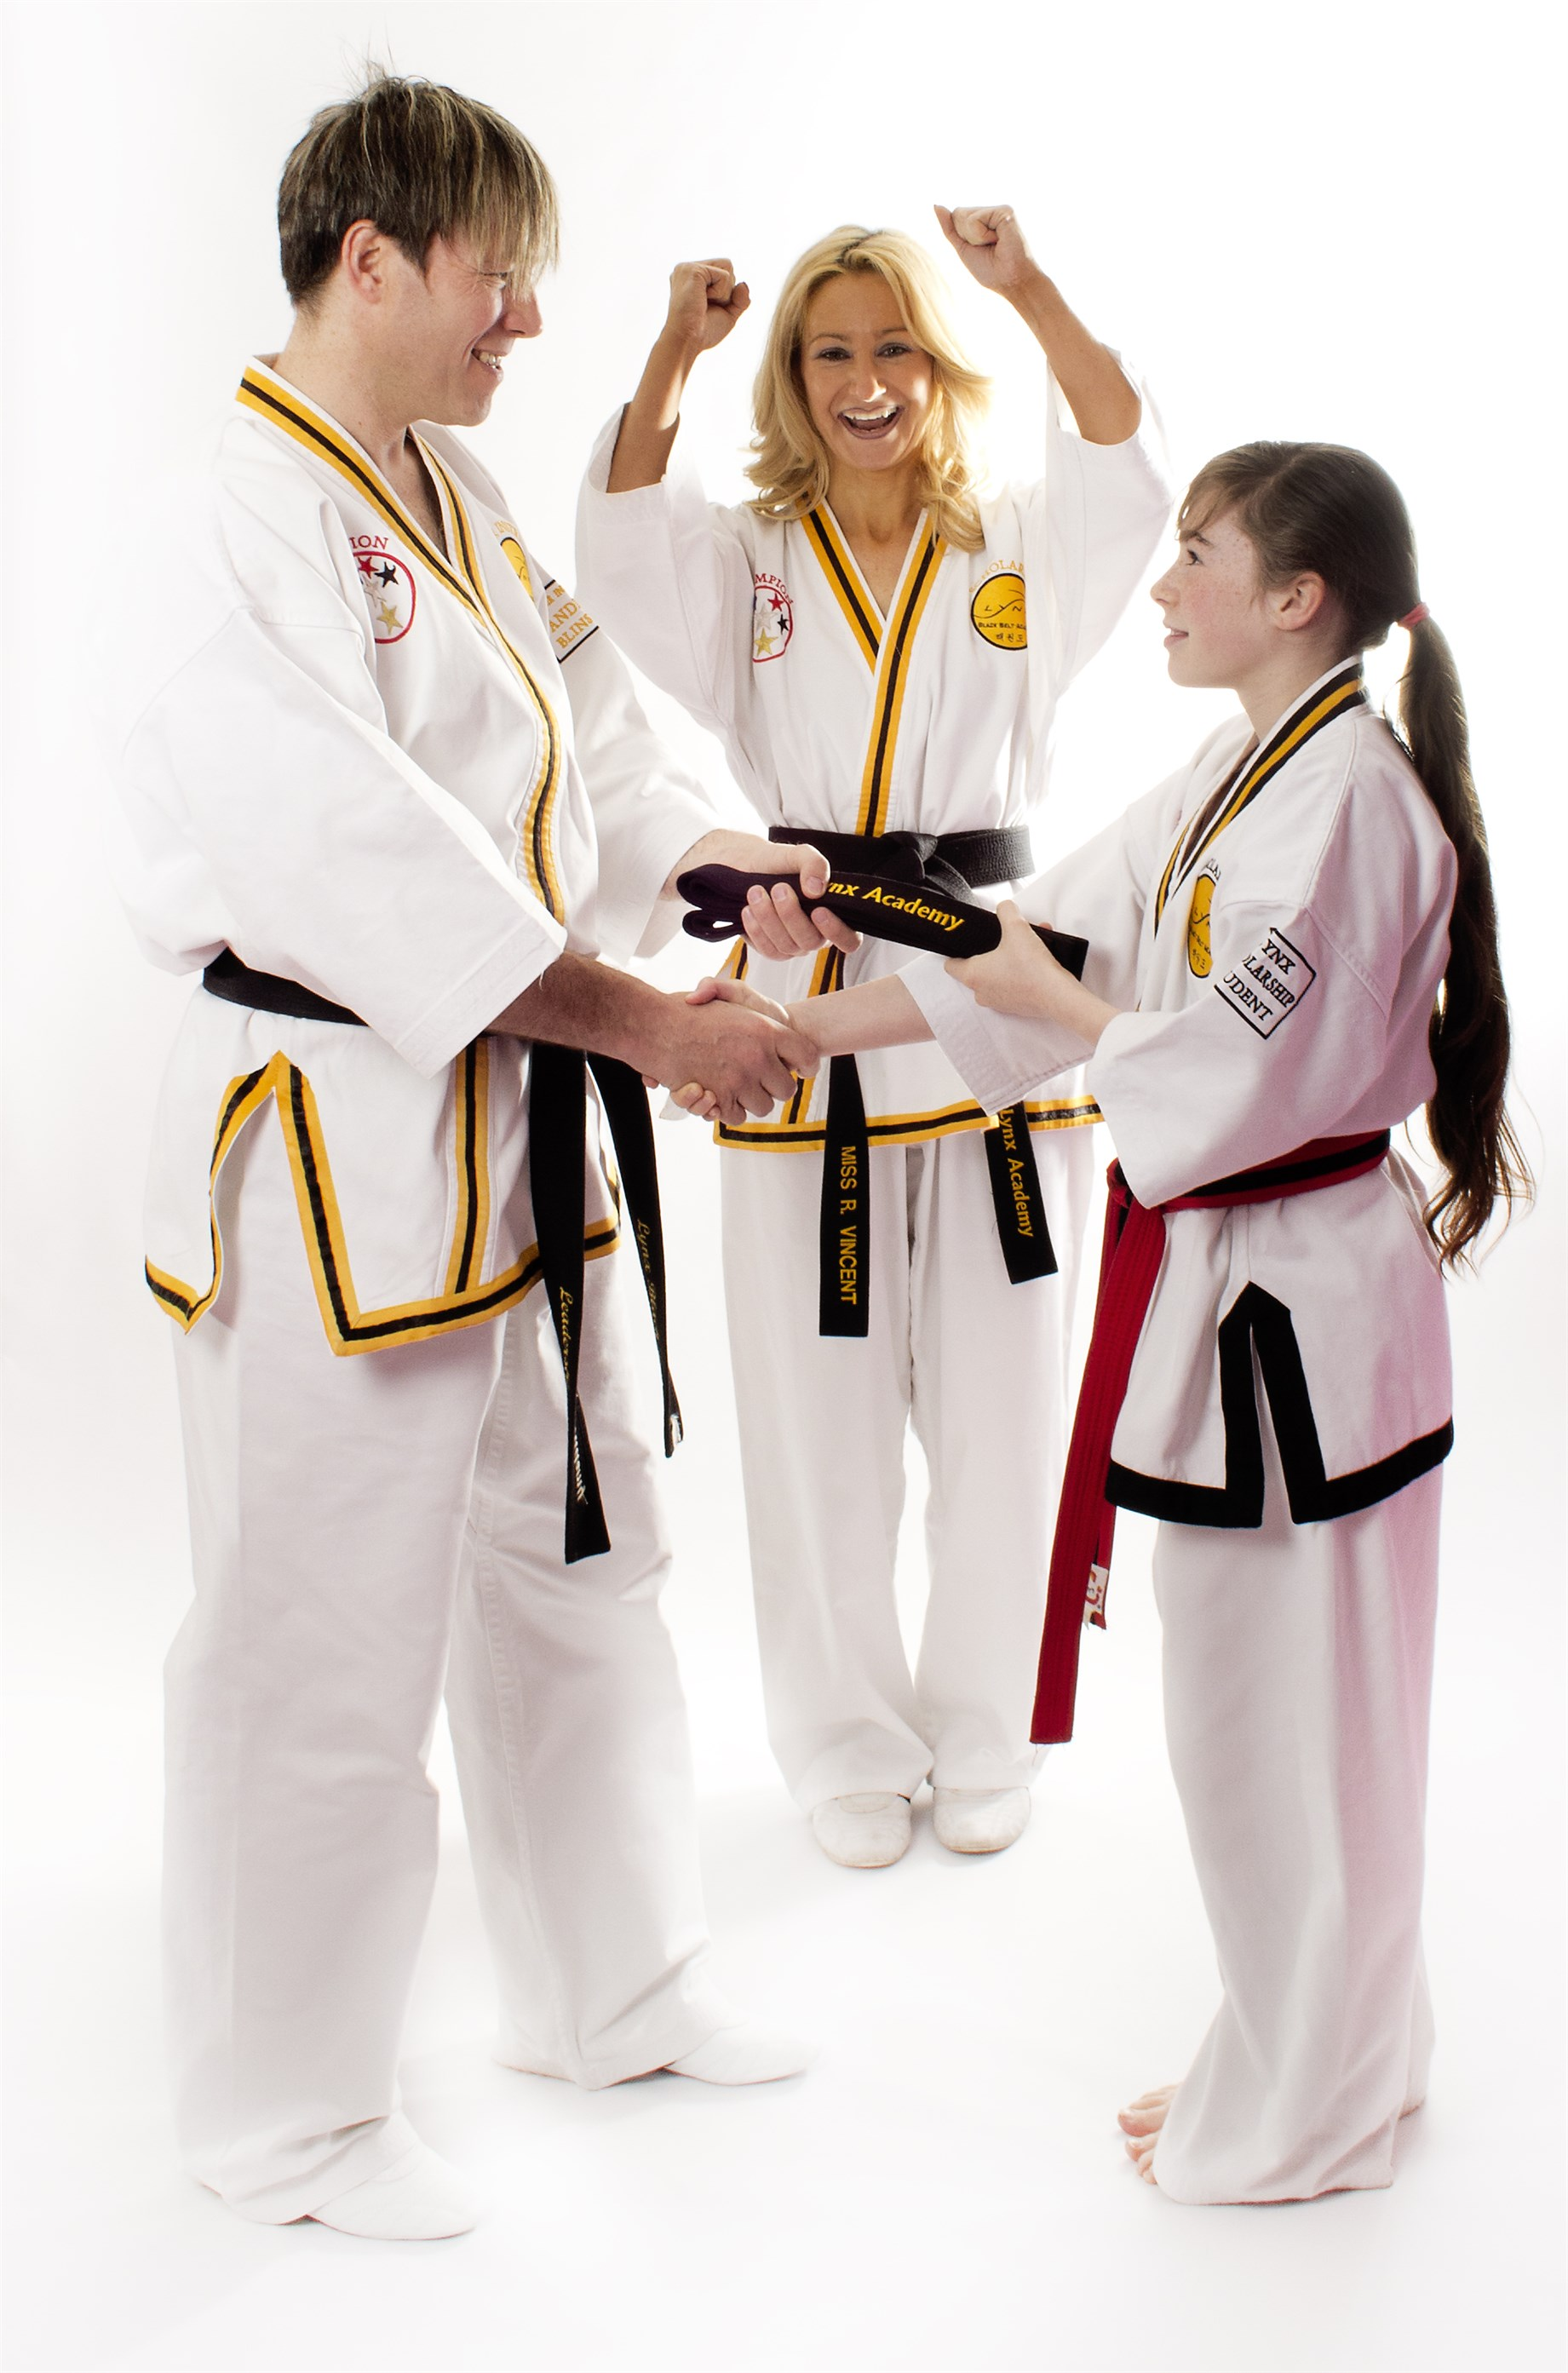 Family Program at Lynx Black Belt Leadership Academy, Retford